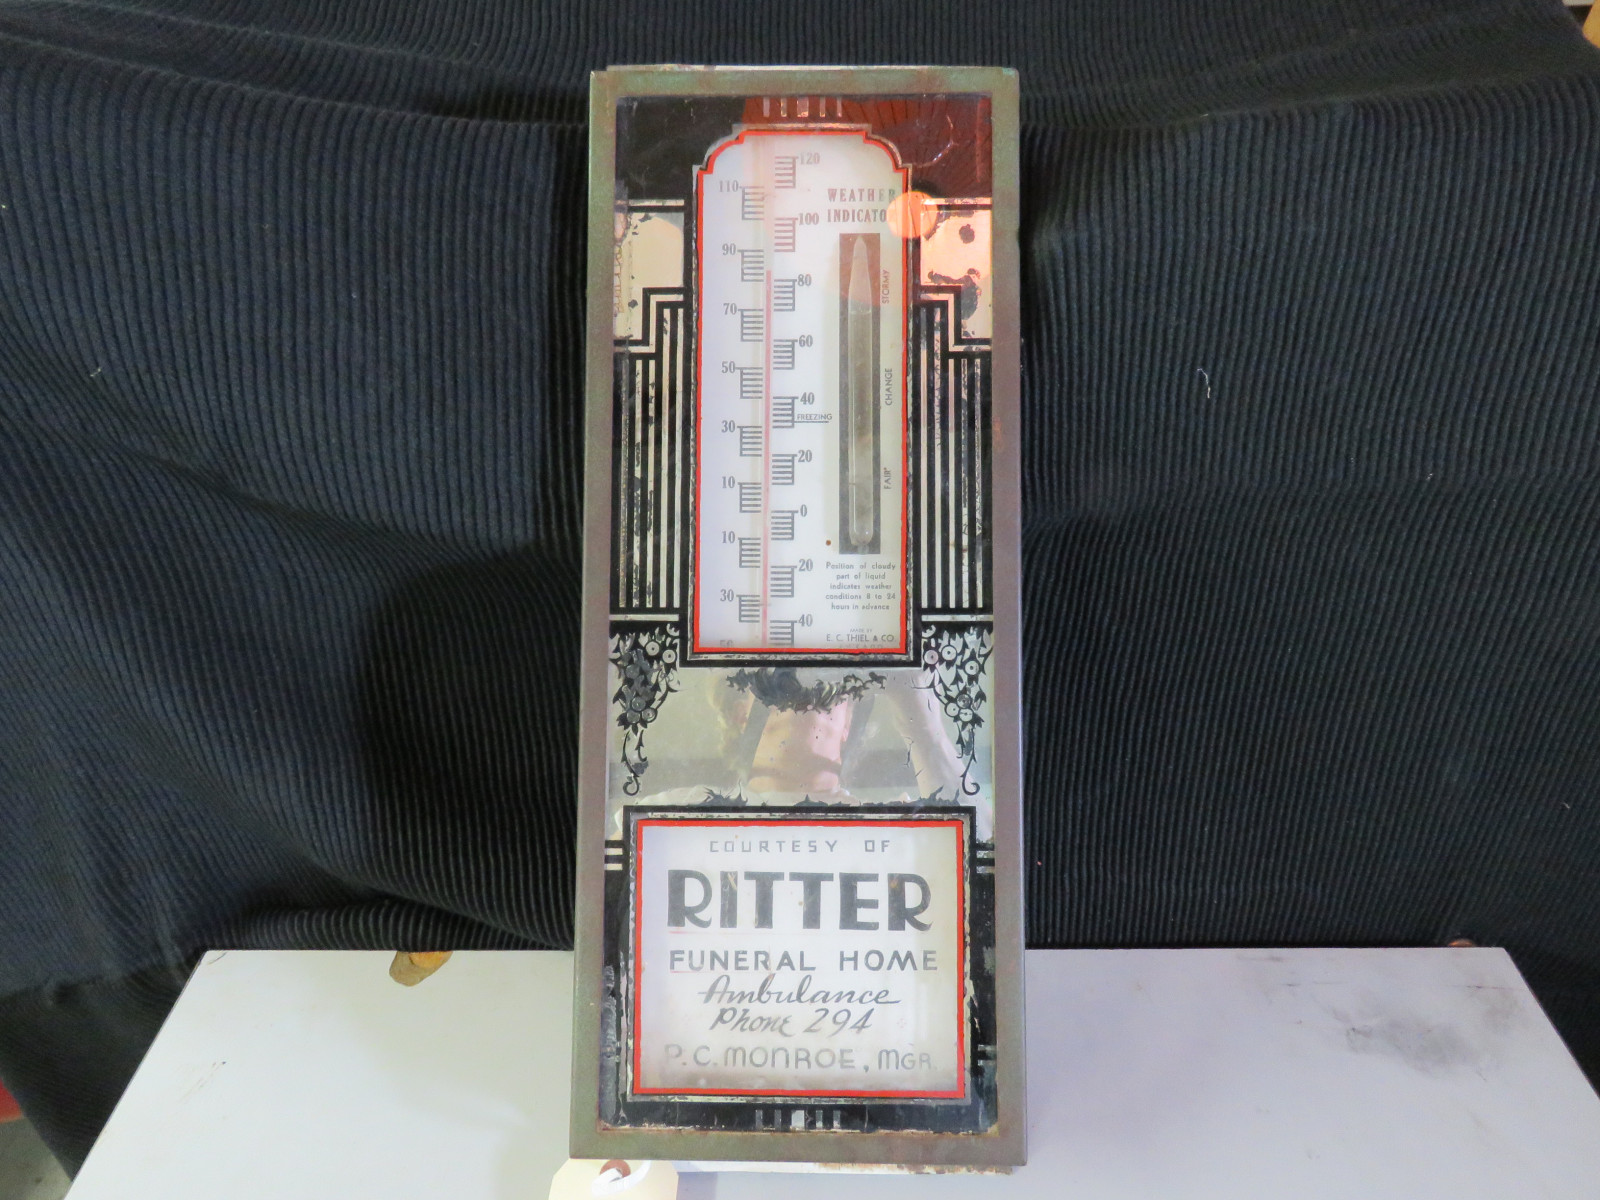 Ritter Funeral Home Advertising Thermometer - Image 1